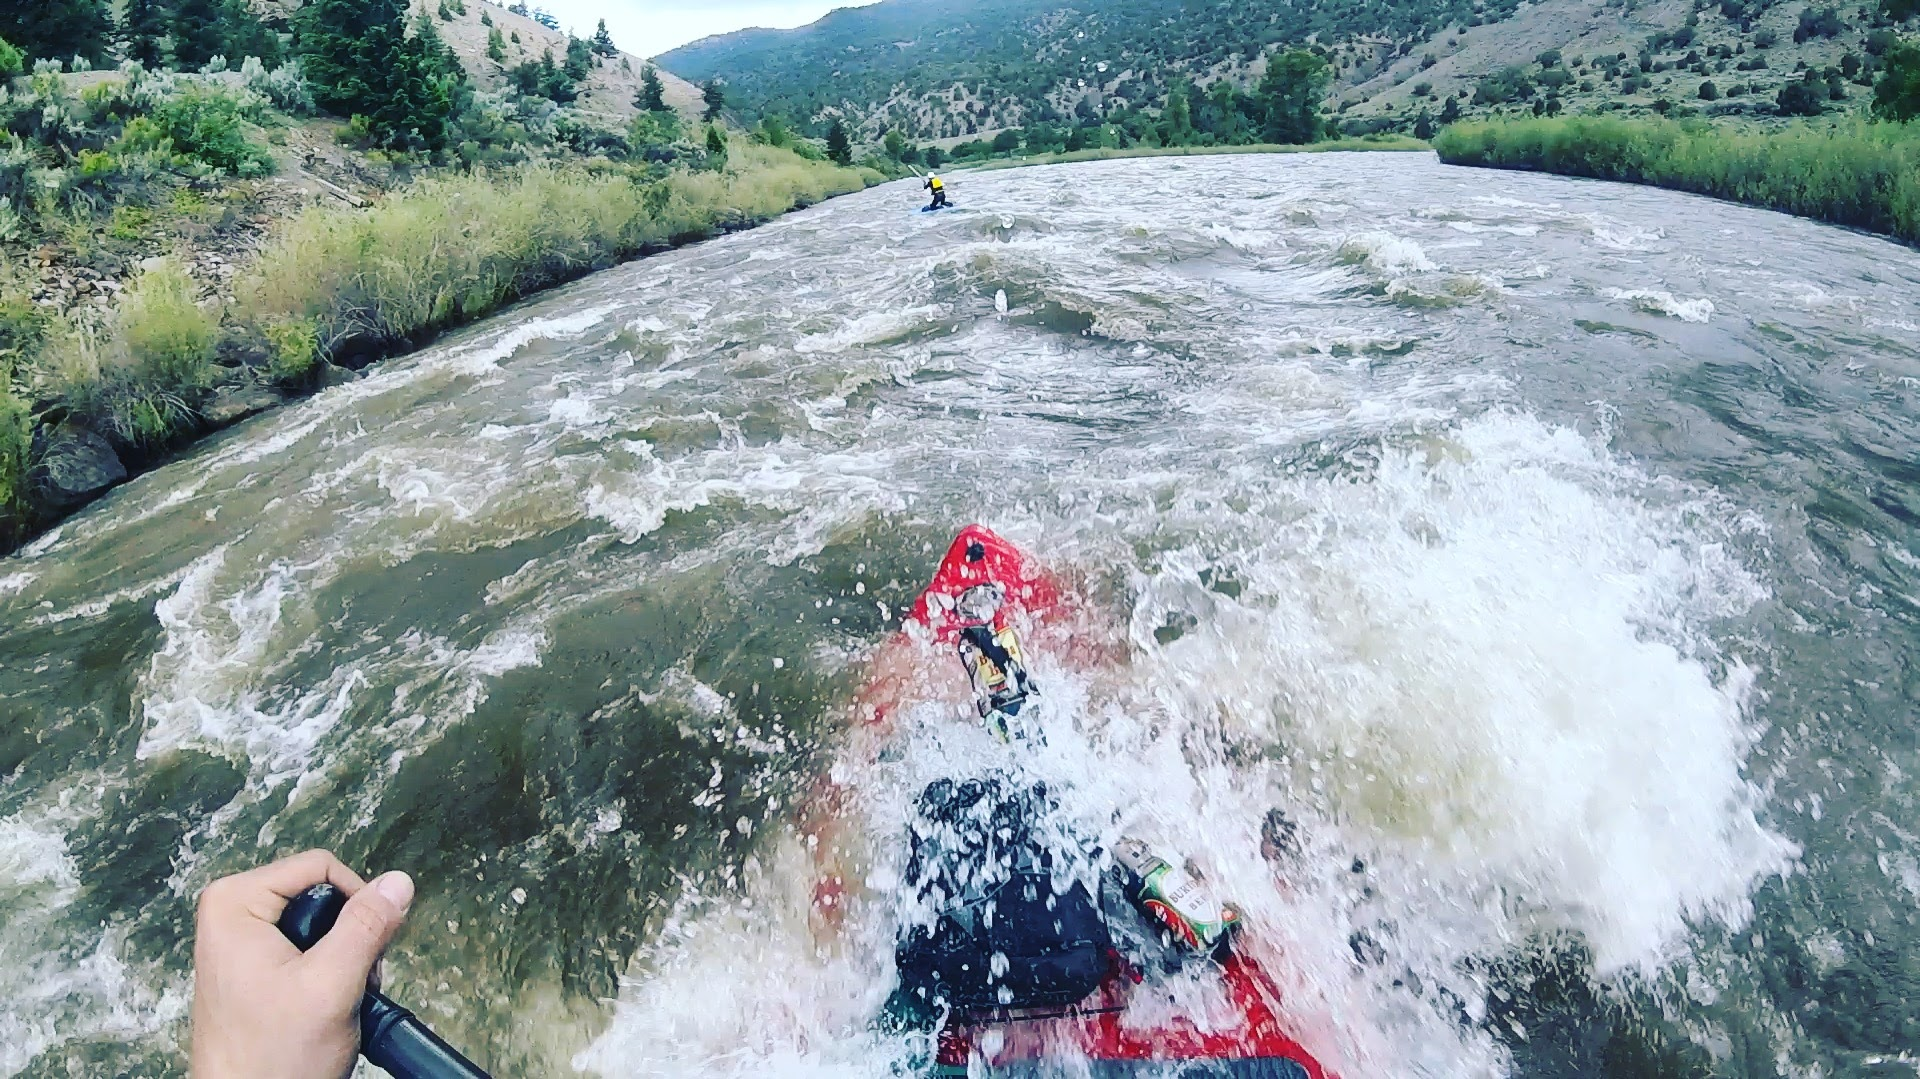 A stand up paddleboarder paddles over a river rapid.